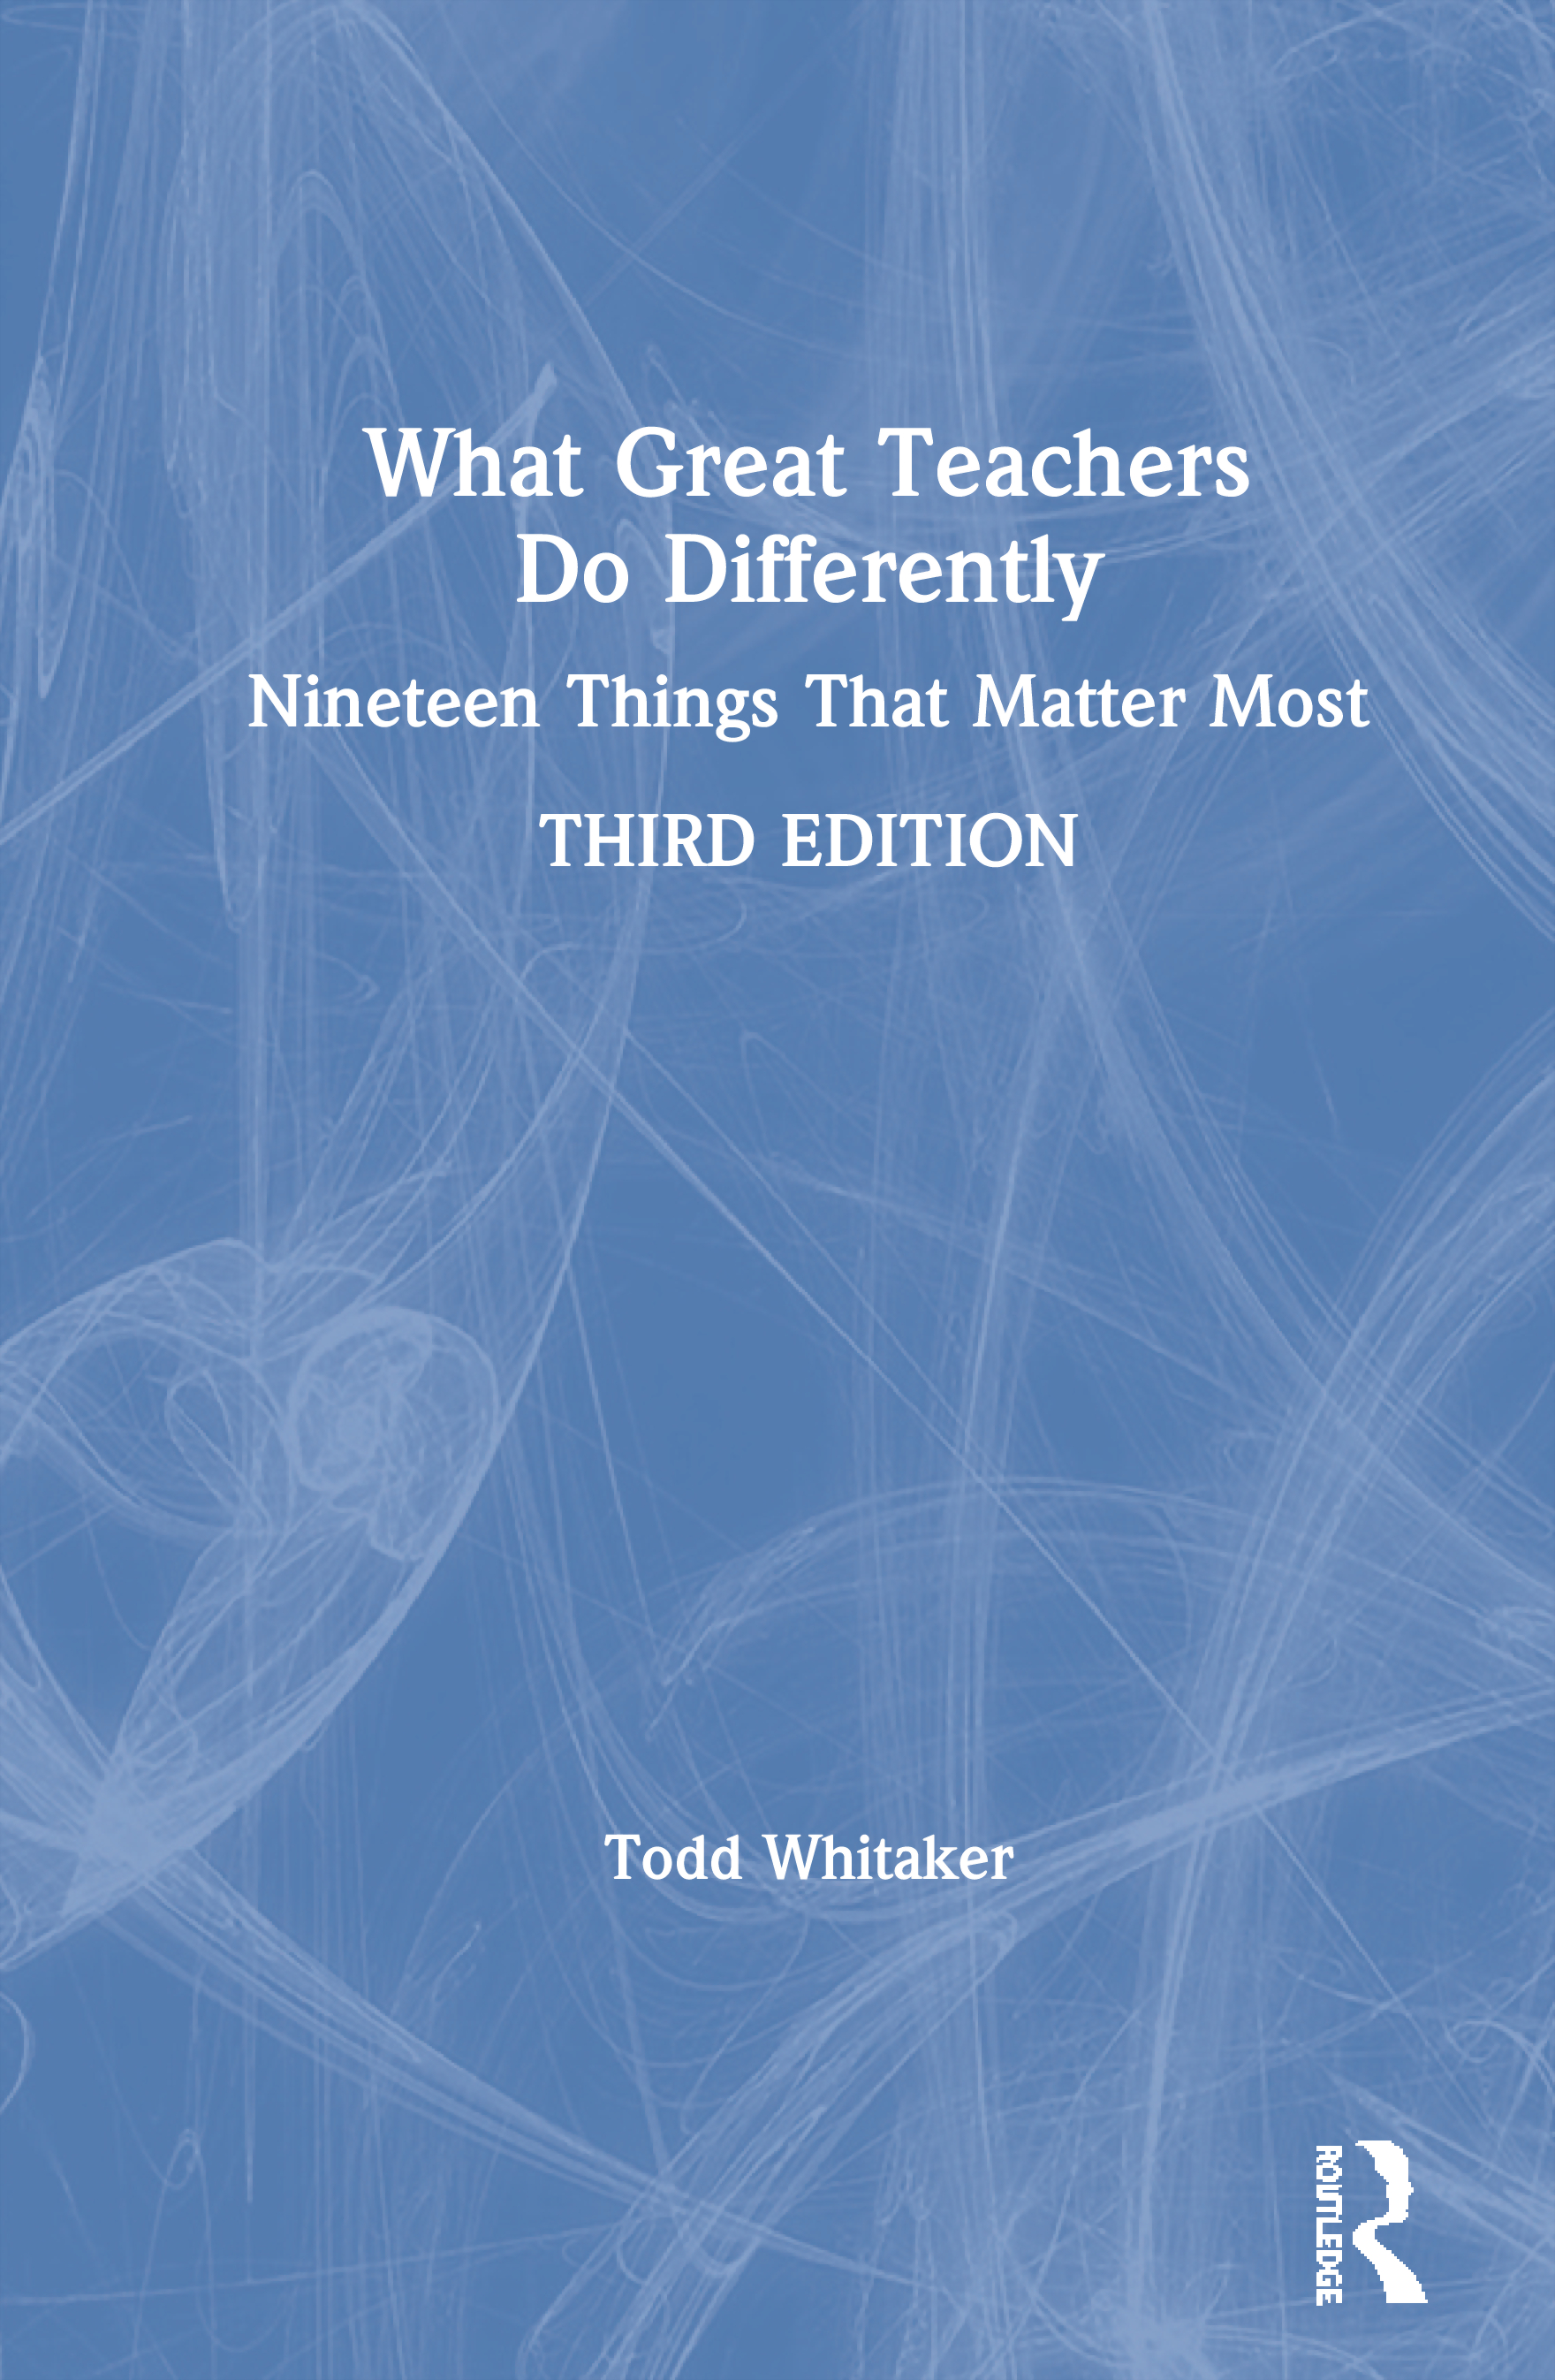 What Great Teachers Do Differently: Nineteen Things That Matter Most book cover